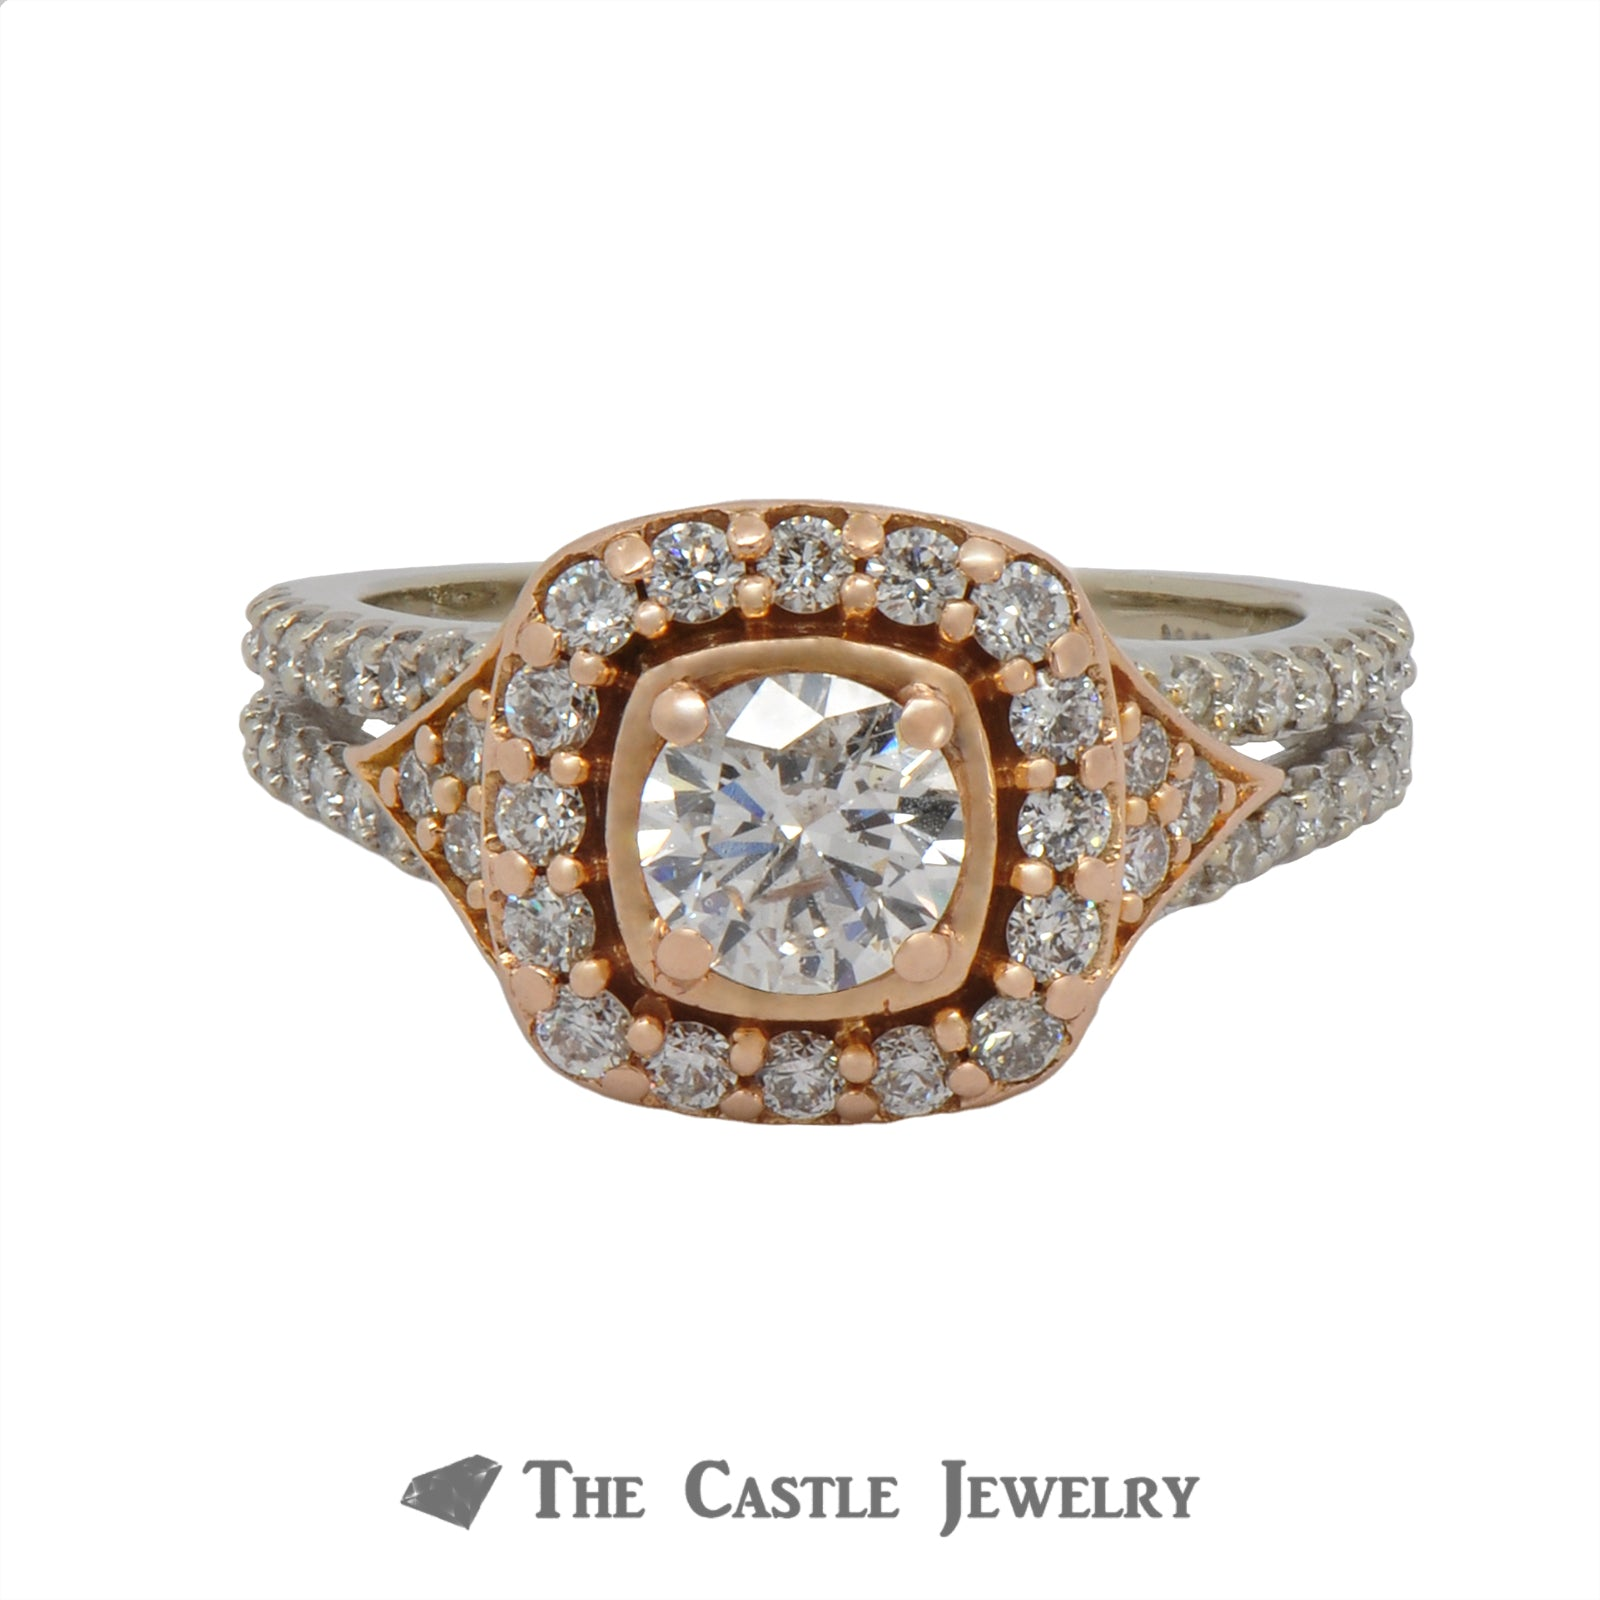 1.25cttw Diamond Engagement Ring with Halo & Accents In 14K Rose And White Gold